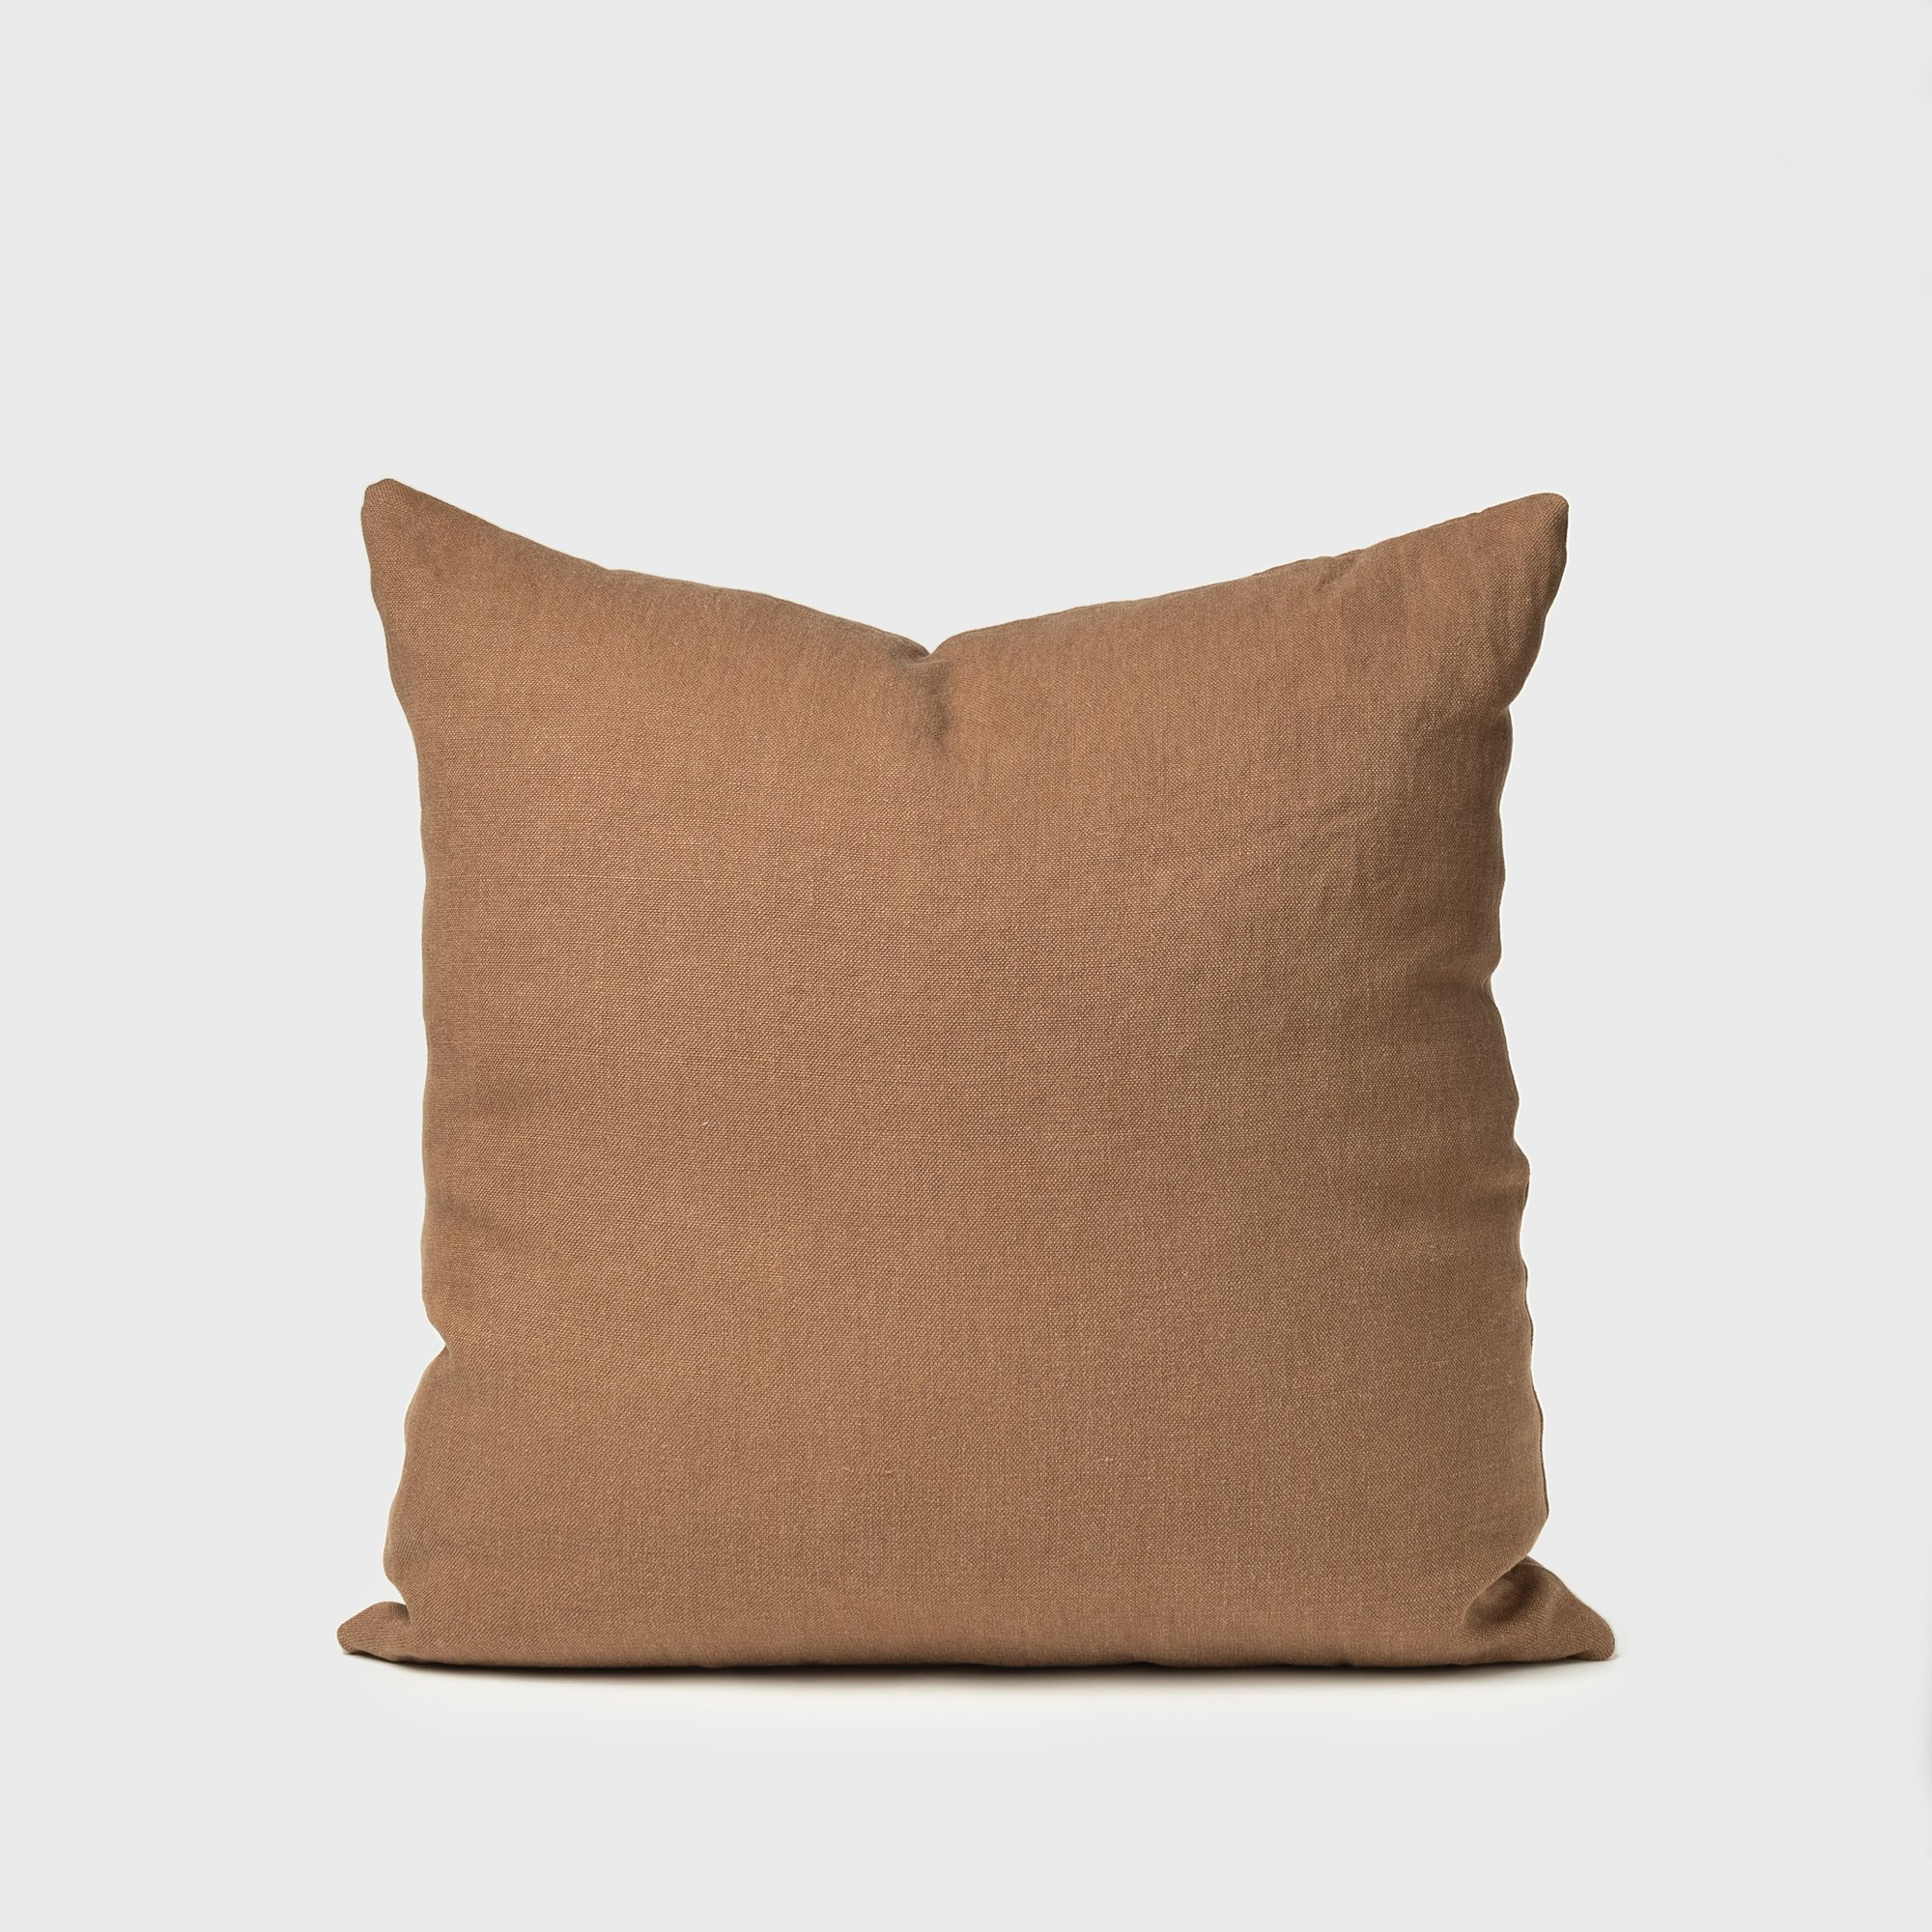 ALL-SORTS-OF-SHOPPE-ACORN-PILLOW